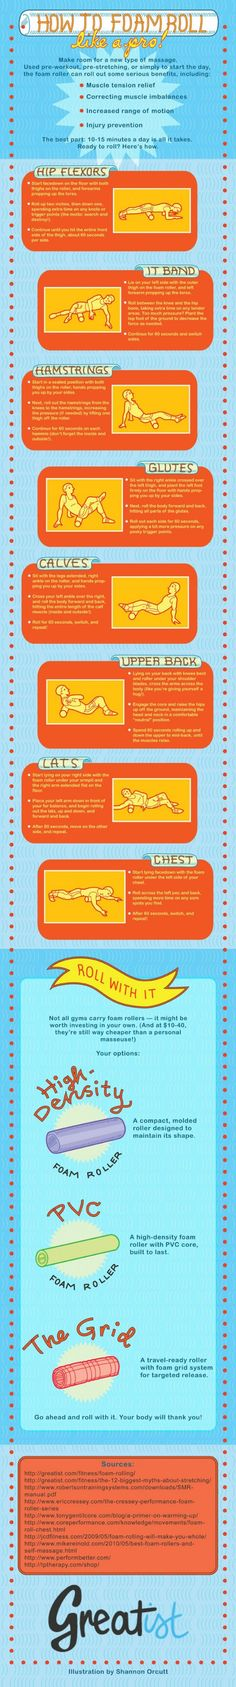 infographic-how-to-foam-roll-like-a-pro